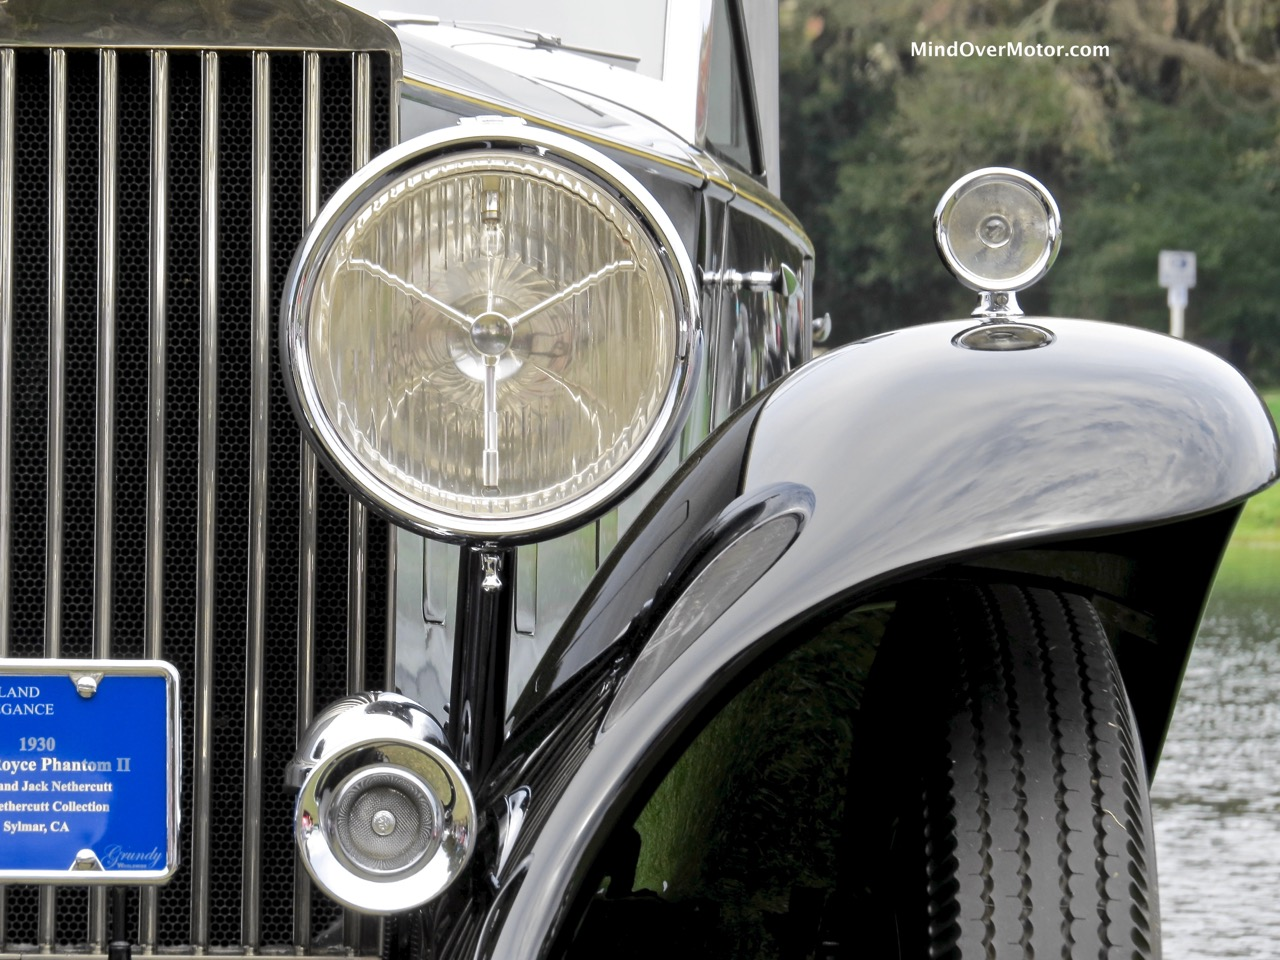 1930 Rolls-Royce Phantom II Lights